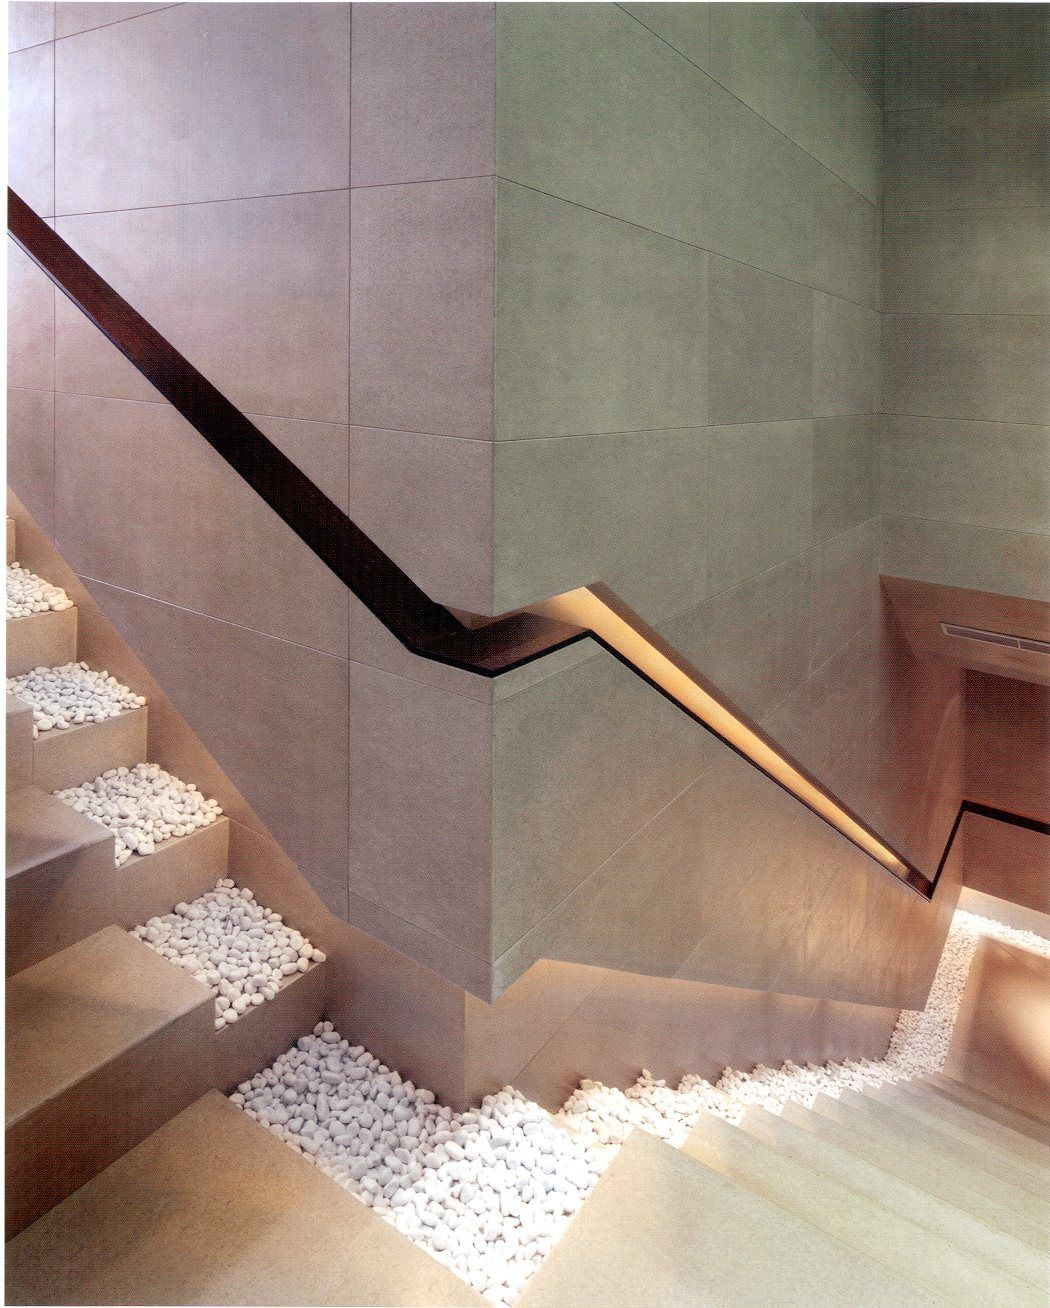 Ringhiere Scale Interne Moderne amazing handrail design / stairs. detail of gravel needs